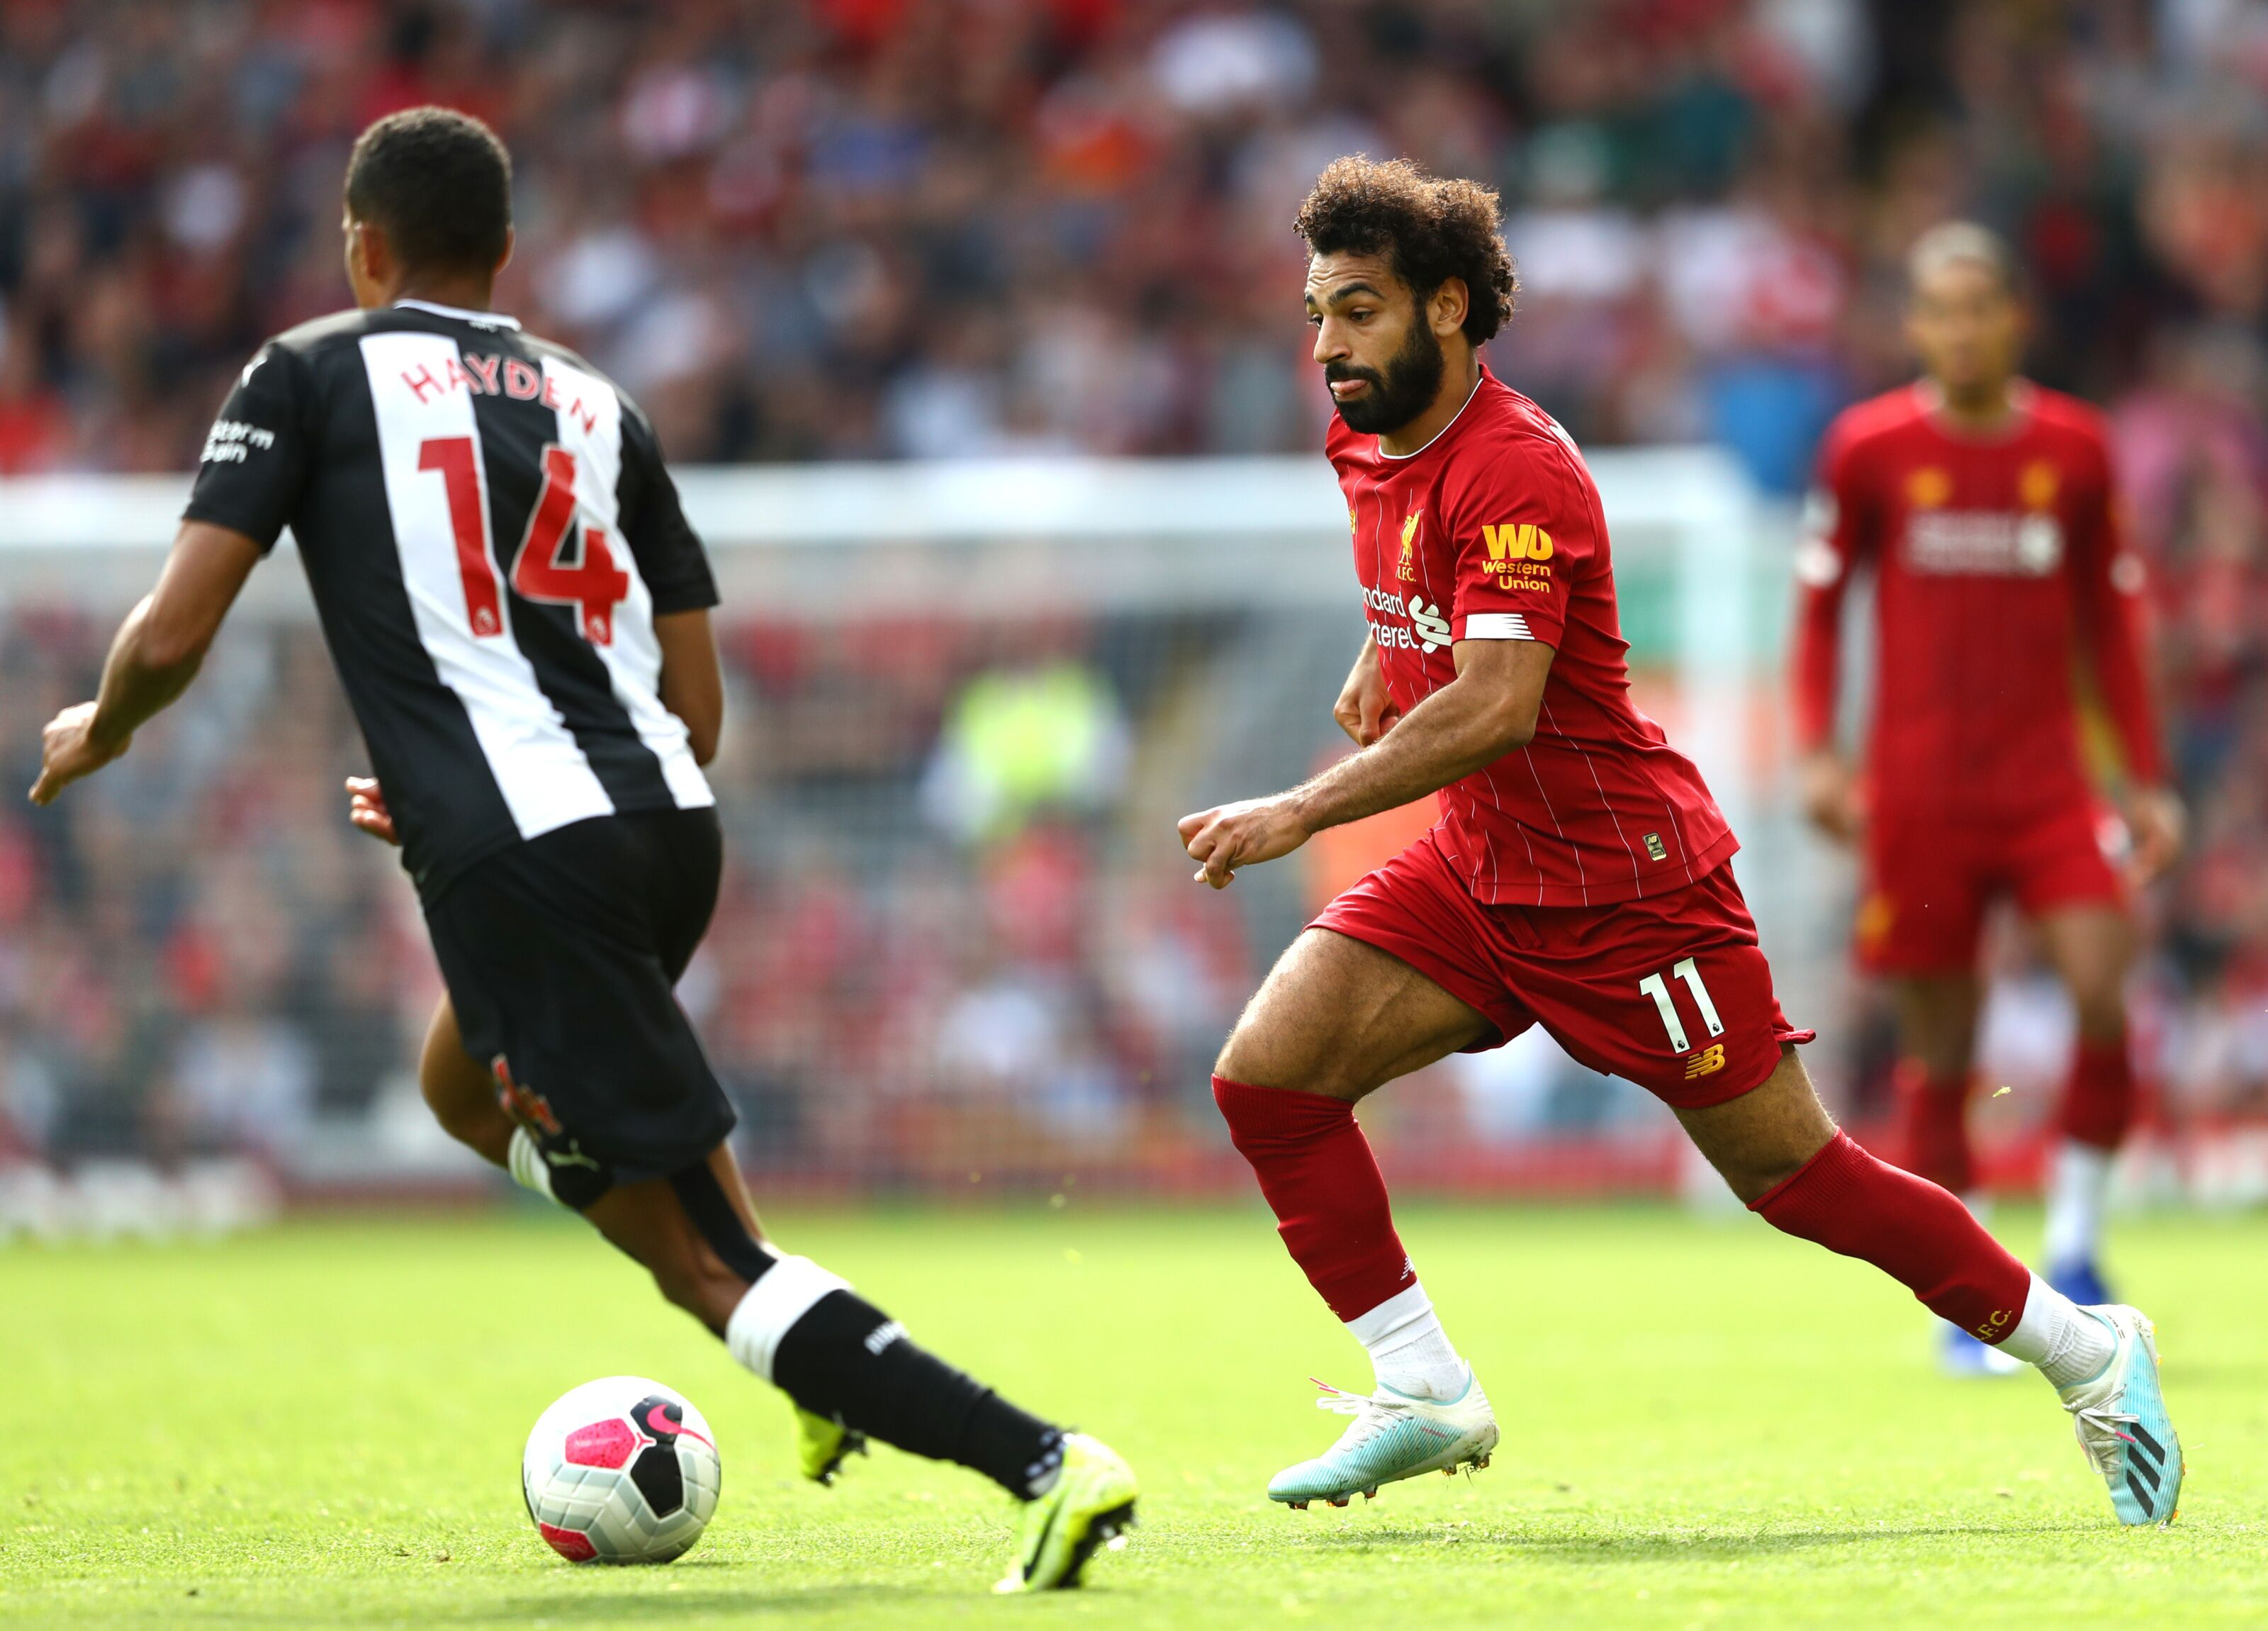 Liverpool 3-1 Newcastle: Shelvey sent to naughty corner by Salah